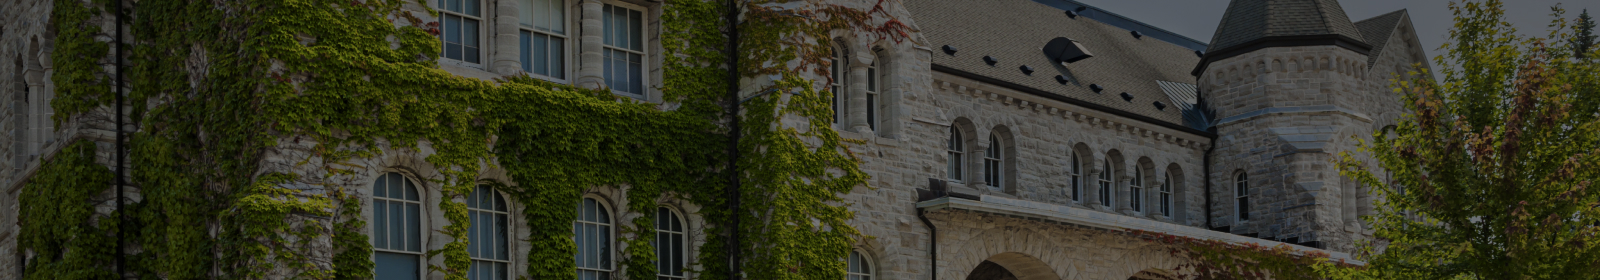 Queen's University has a very inclusive community. The staff, students and faculty come from various backgrounds.